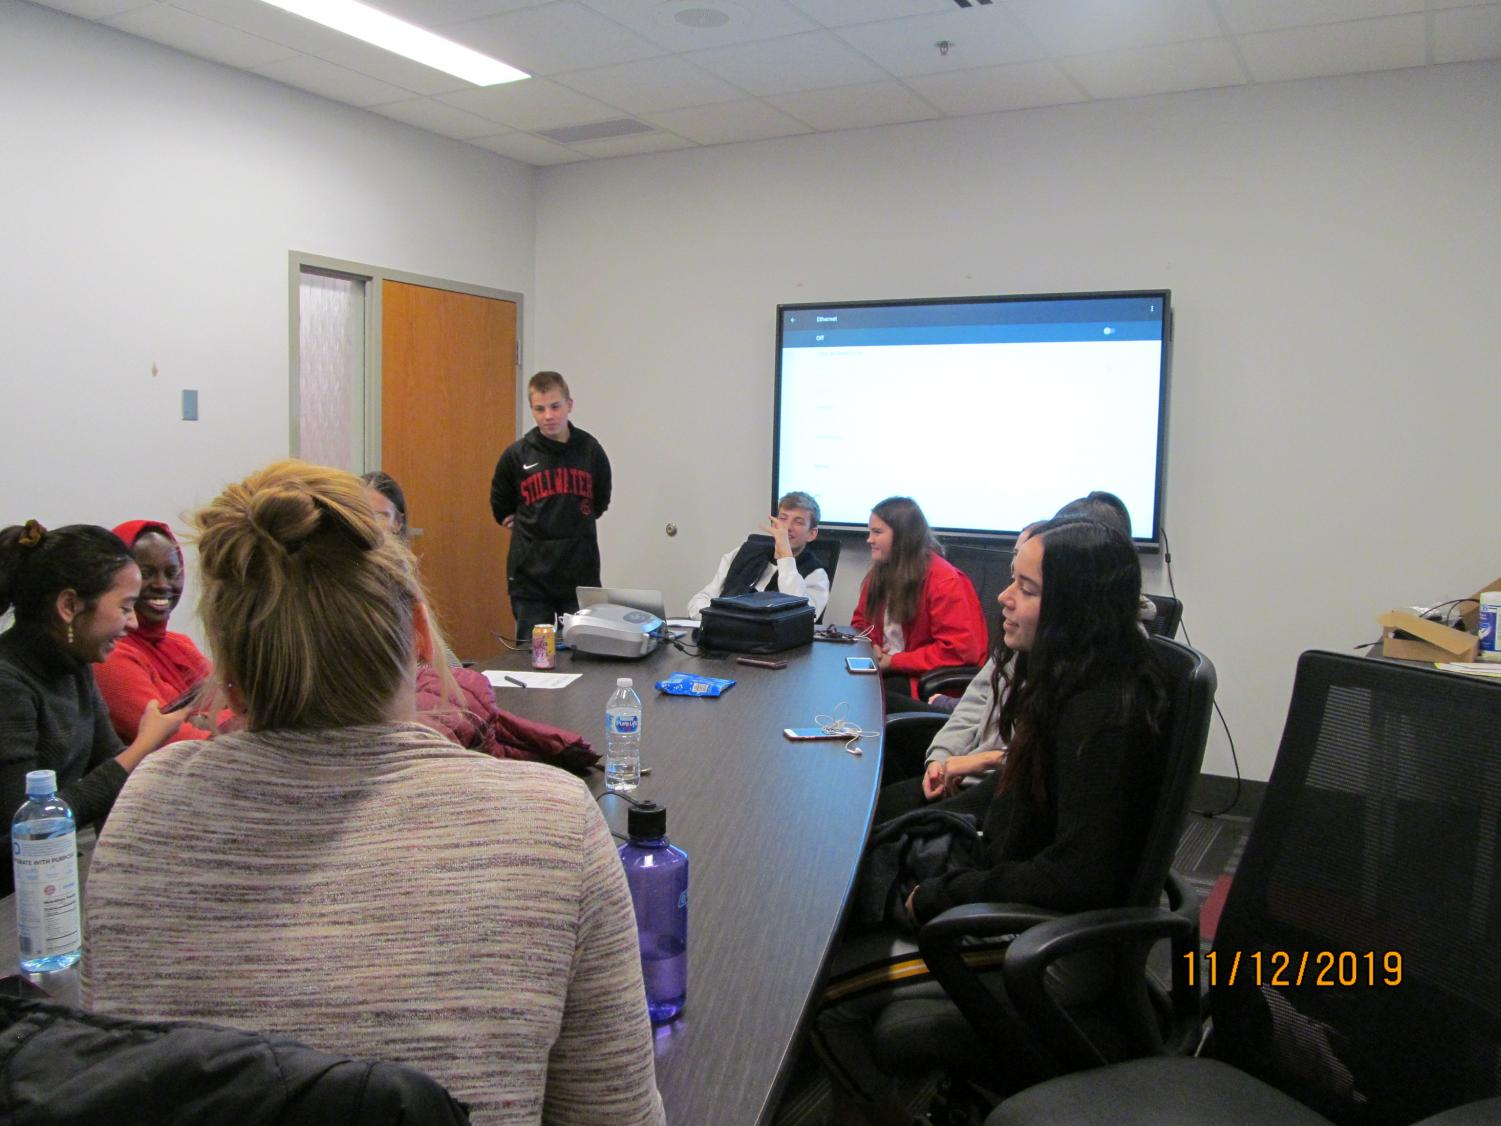 Foreign Exchange students meet to discuss how things are going and what people are doing. One student gave a presentation about Germany this month.